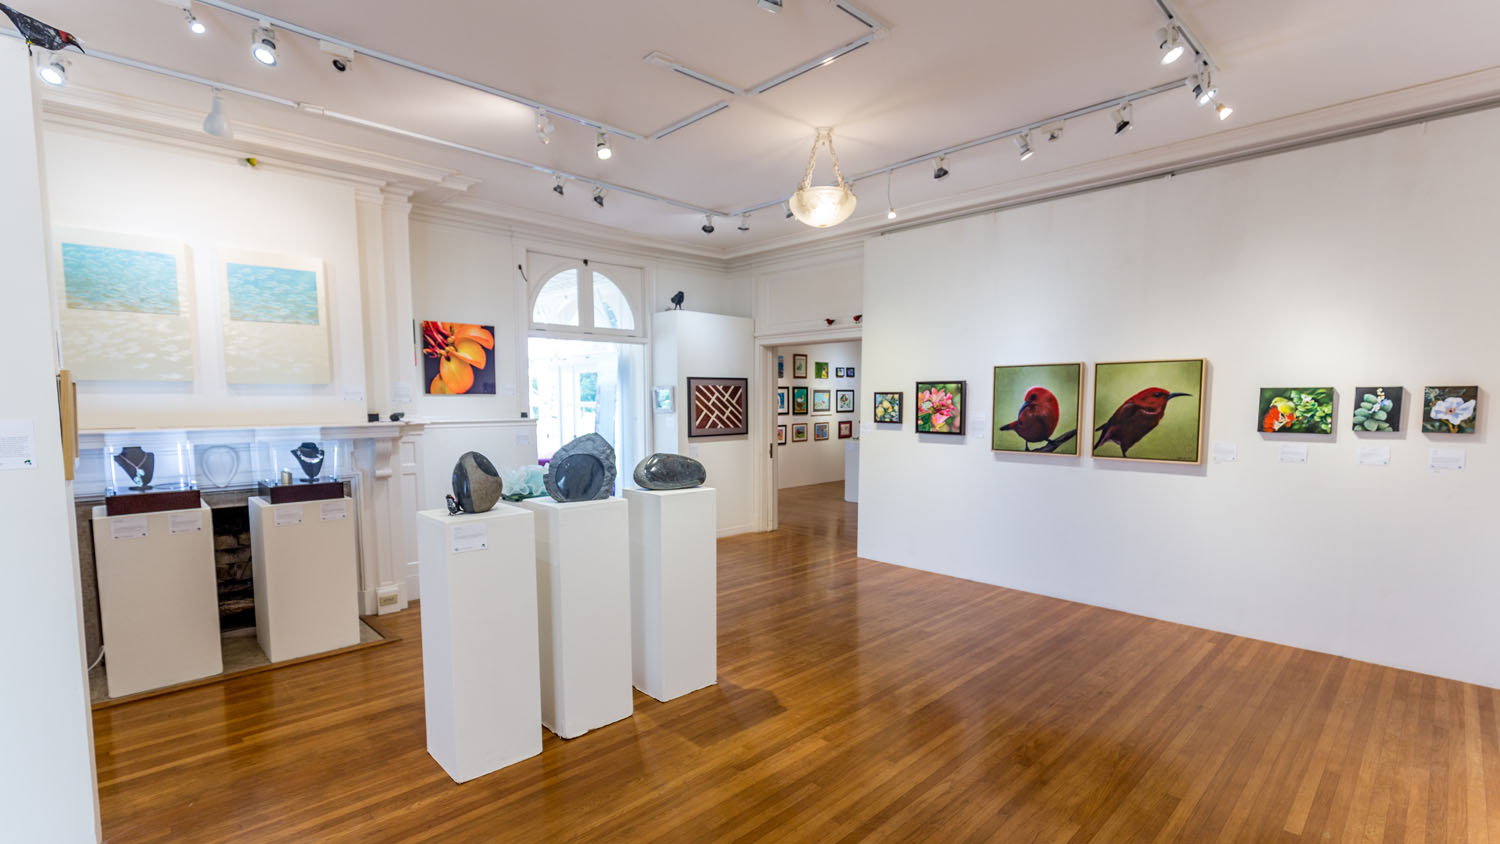 Exhibition Stand Galleries : Exhibitions in main gallery u2014 hui noeau visual arts center art